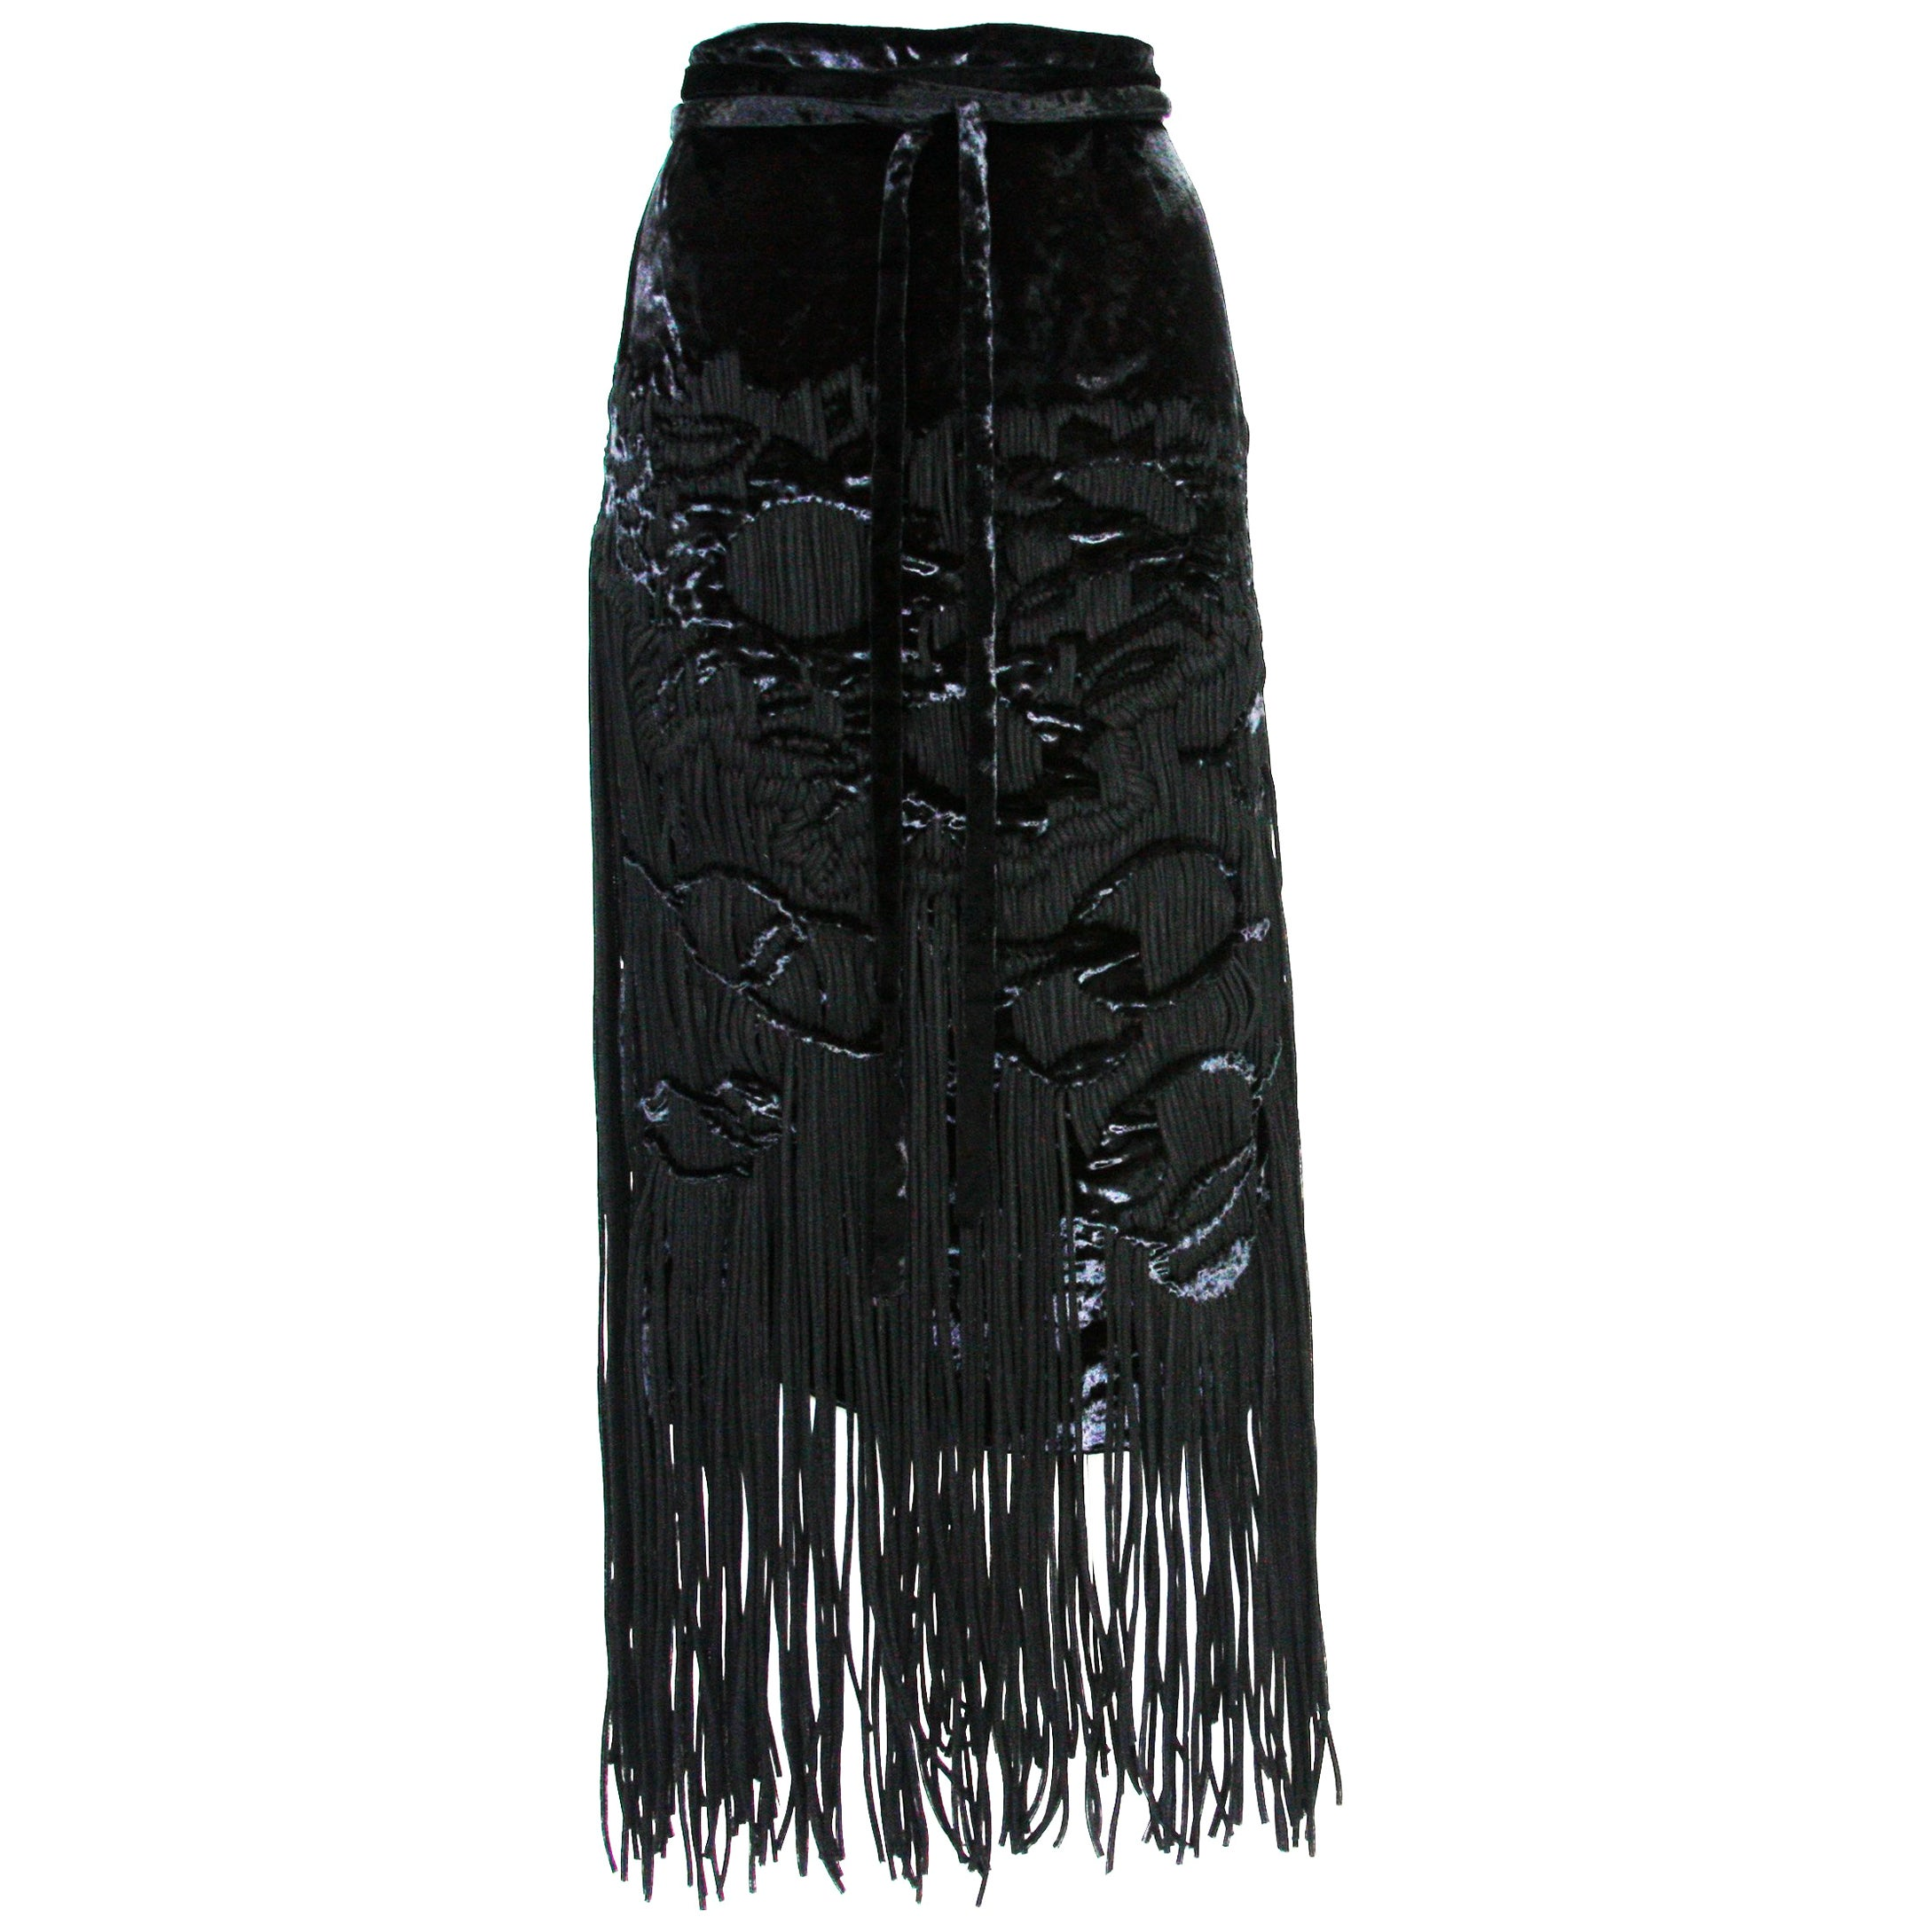 New Tom Ford for Yves Saint Laurent F/W 2001 Velvet Fringe Runway Skirt  Fr. 38